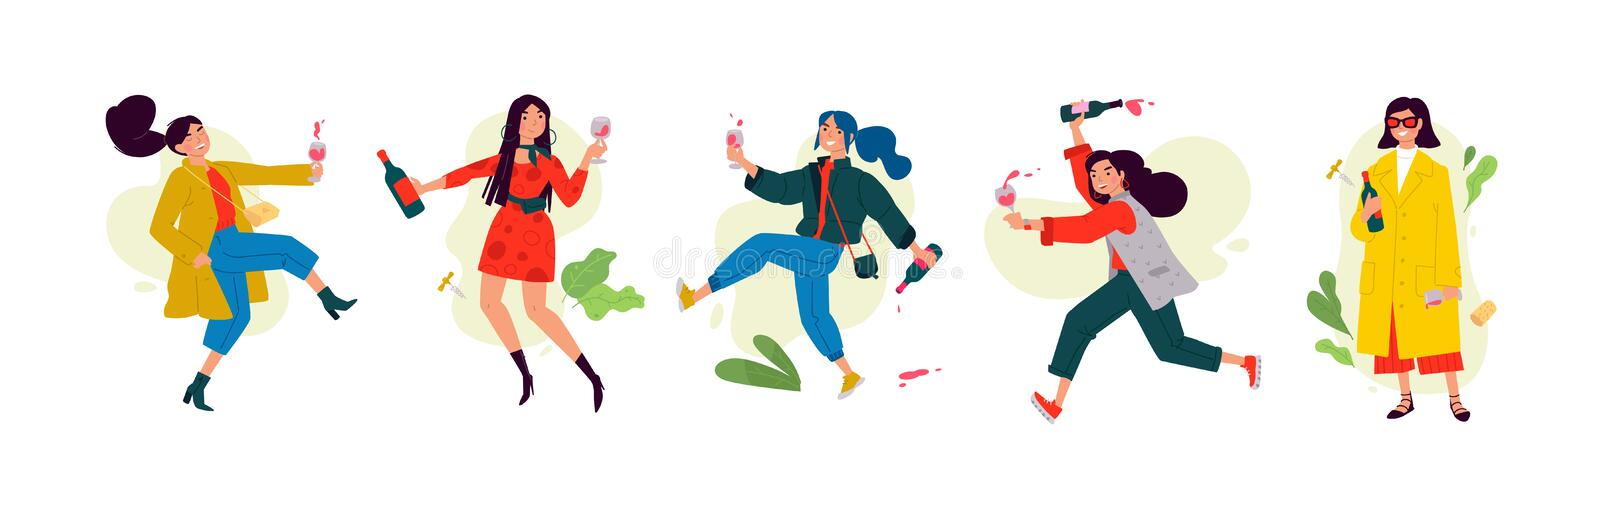 Illustration of dancing girls on Women`s Day. Vector. Women celebrate the holiday, have fun and relax. Party all night long March. 8th. Slightly drunken ladies vector illustration